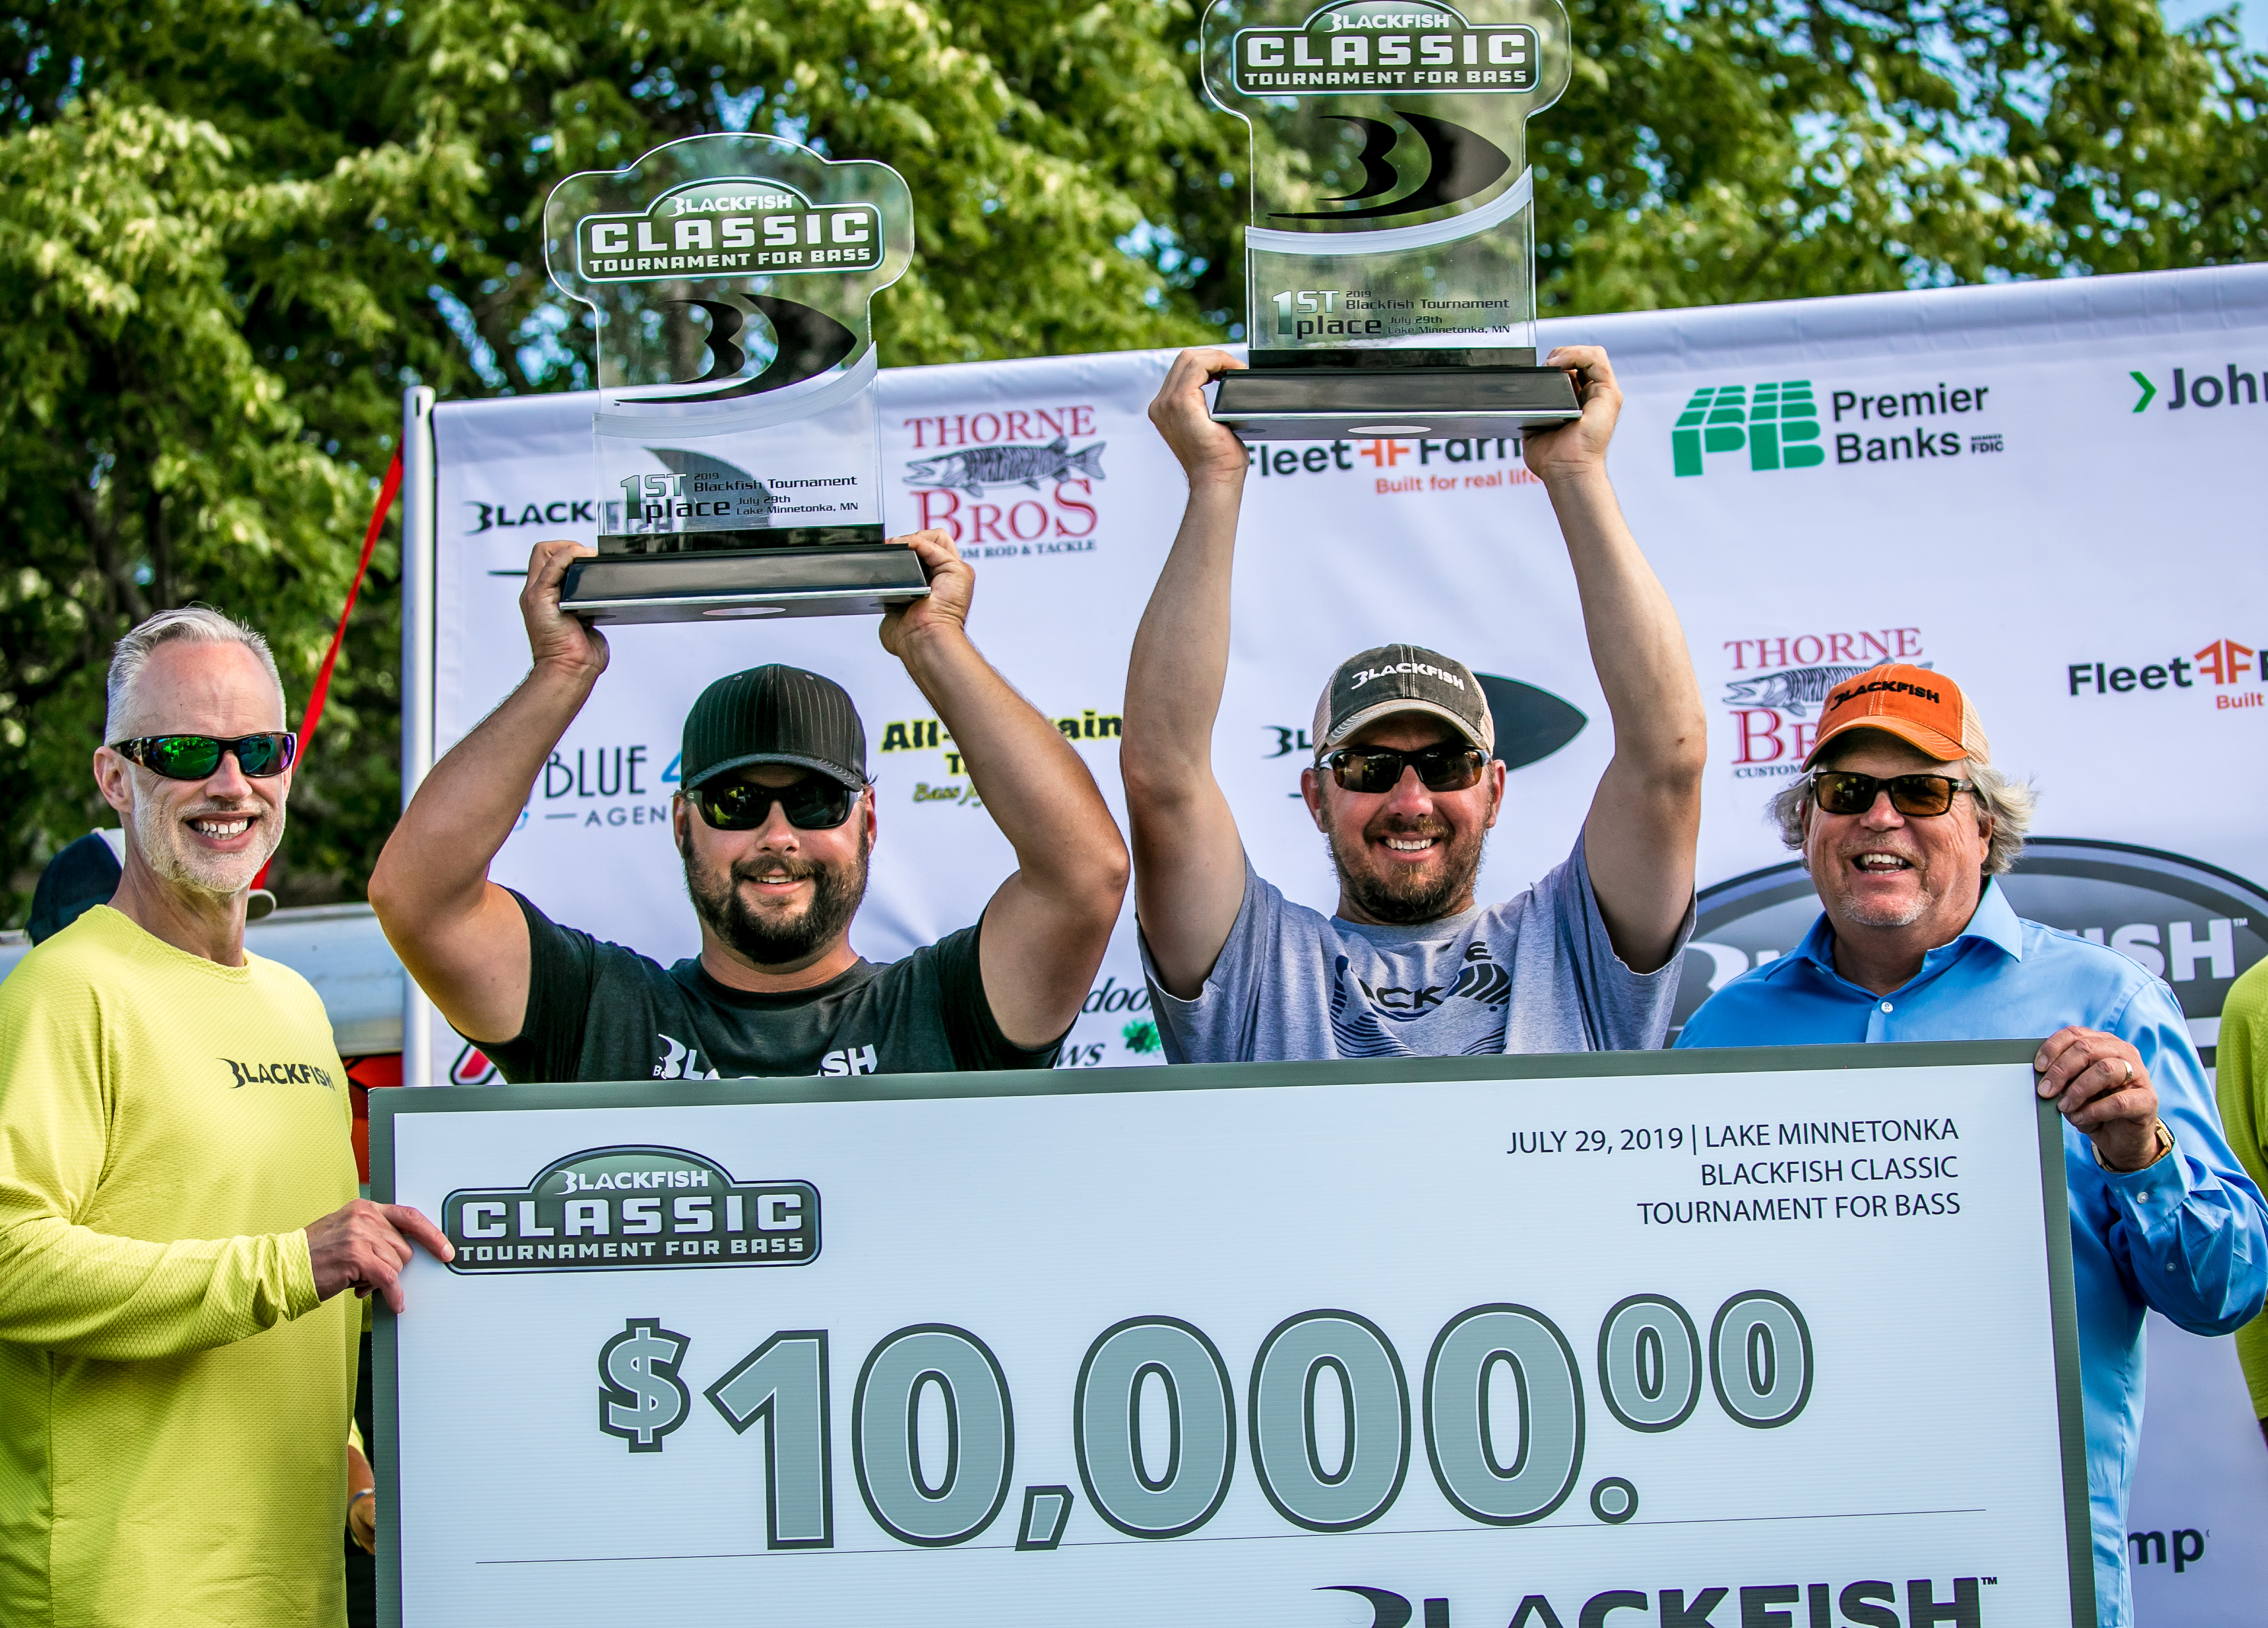 Blackfish® Hosts Largest Bass Tournament in Minnesota for 2019